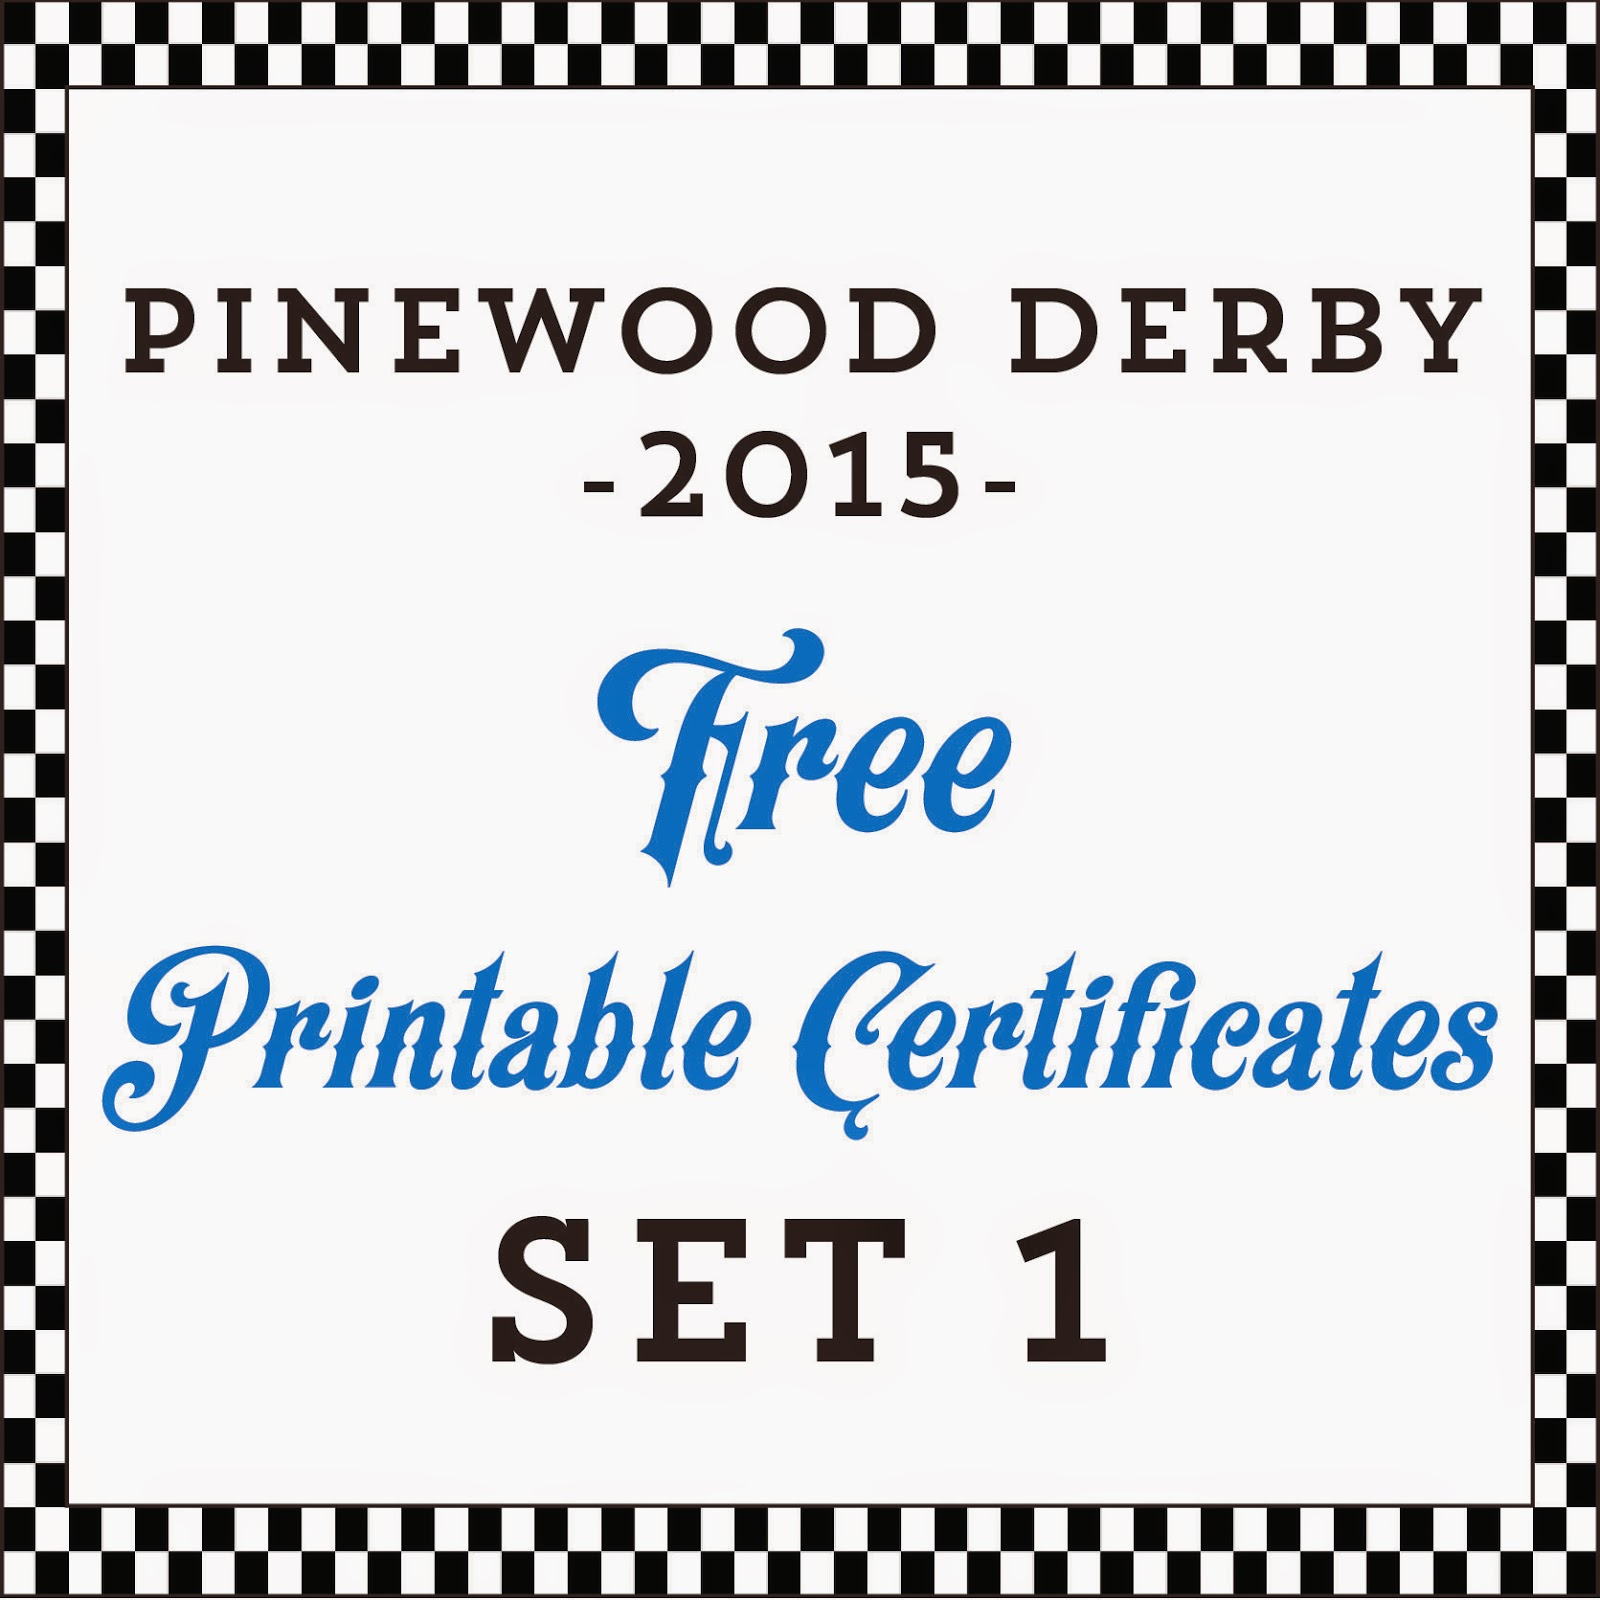 Modest image intended for free printable pinewood derby certificates